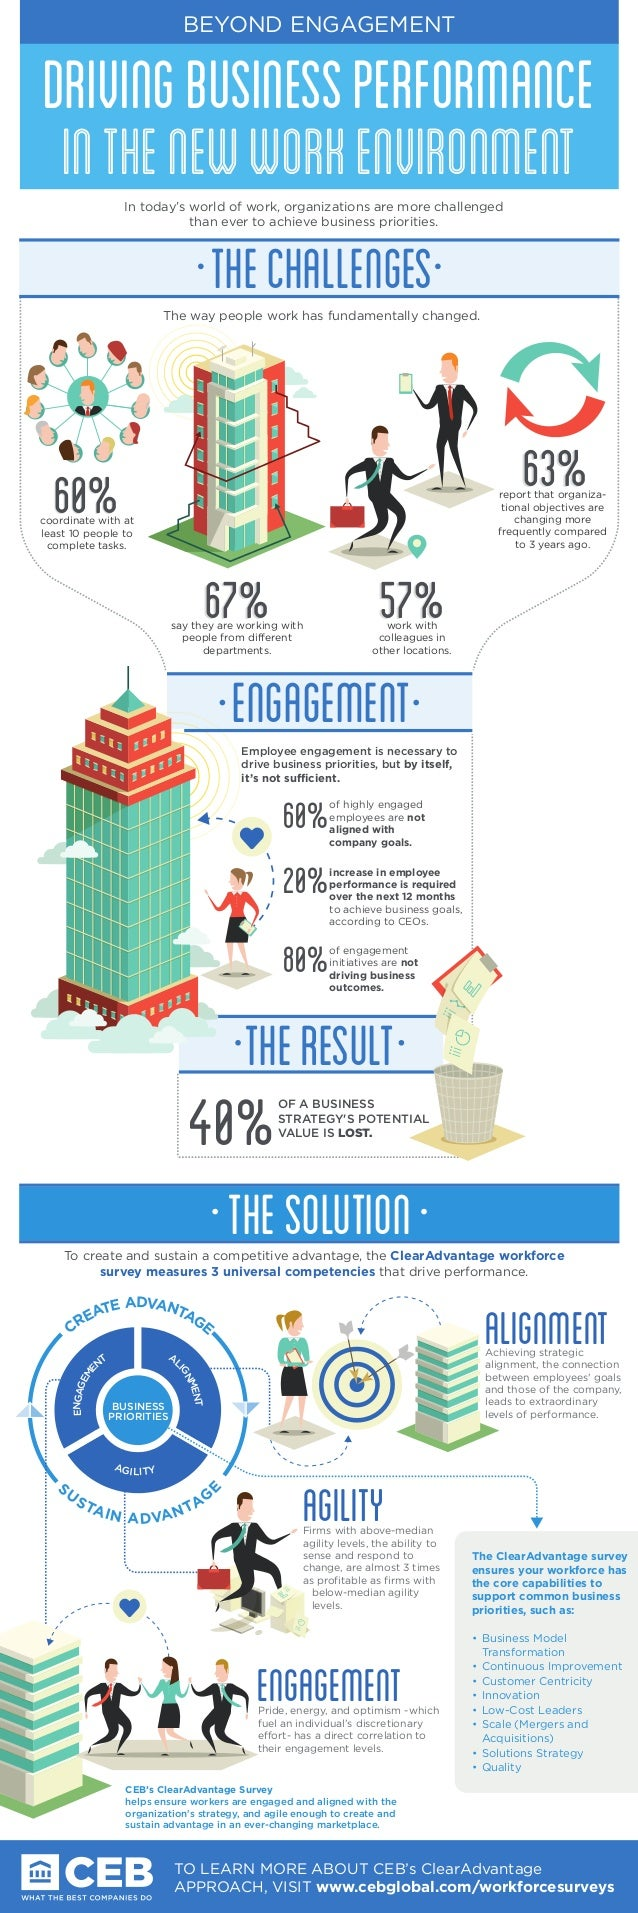 BEYOND ENGAGEMENT  DRIVING BUSINESS PERFORMANCE  in the new work environment  THE CHALLENGEs  63%  The way people work has...